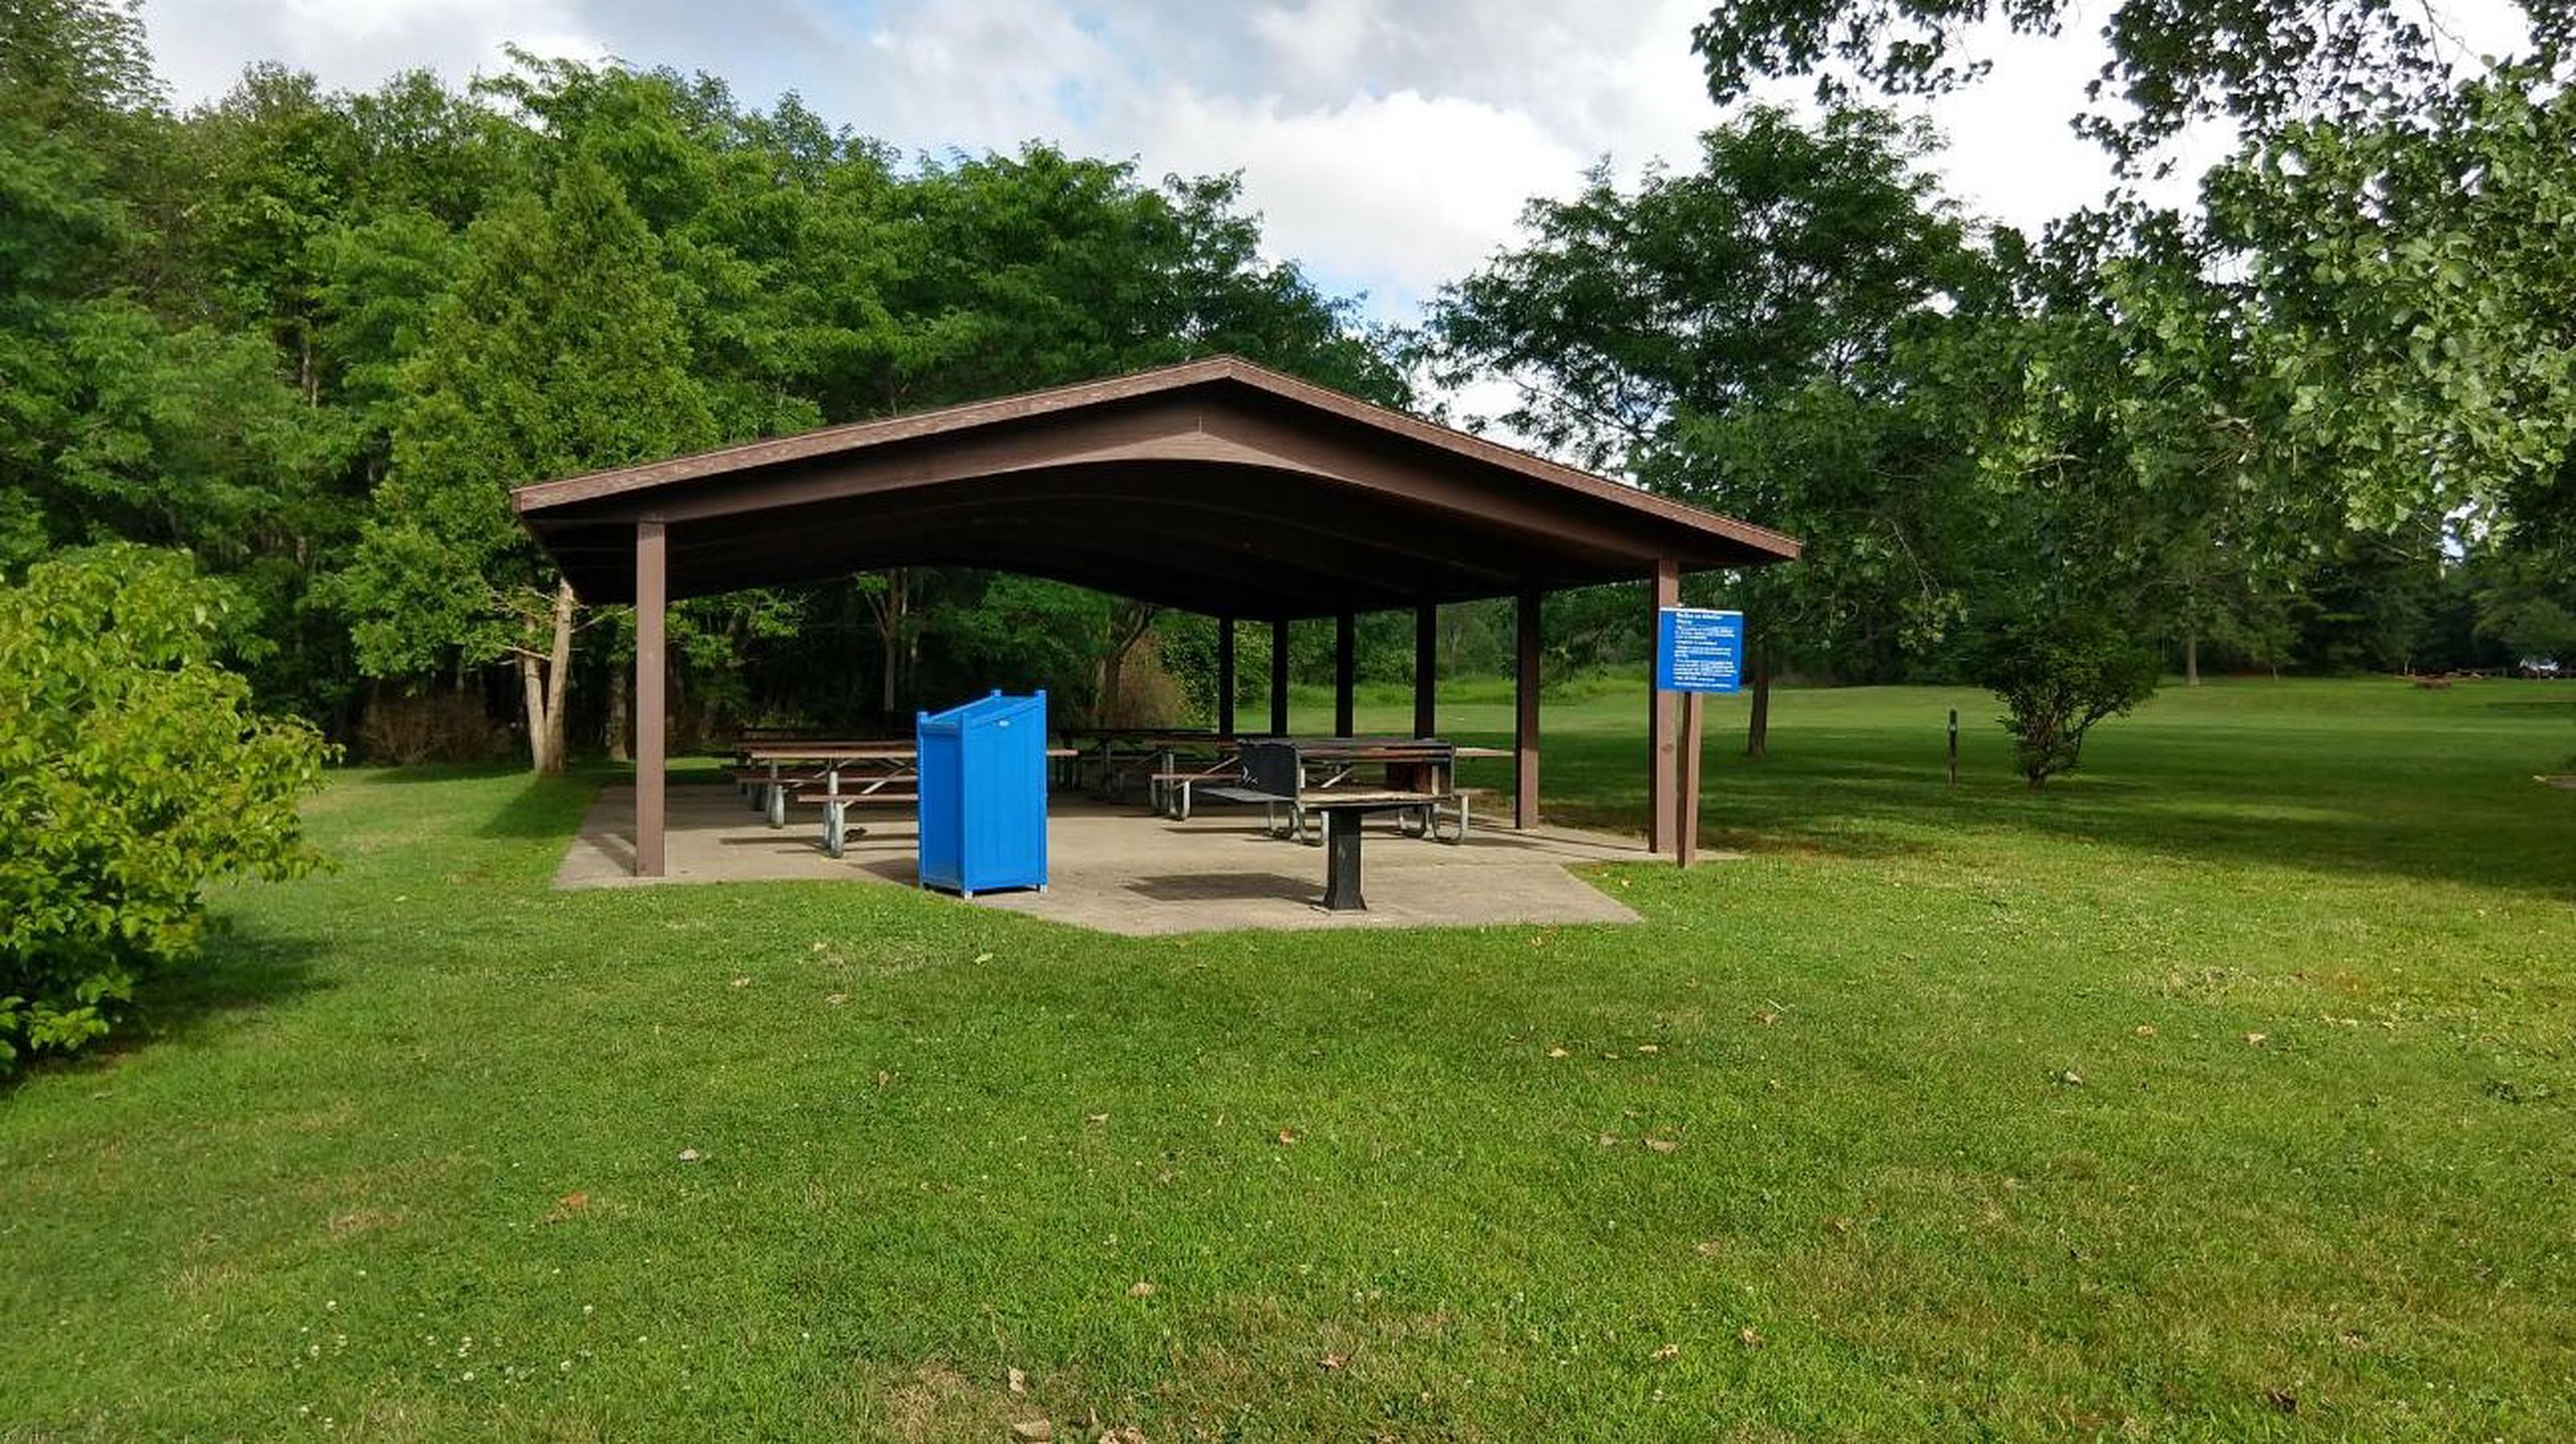 MEADOWS SHELTER